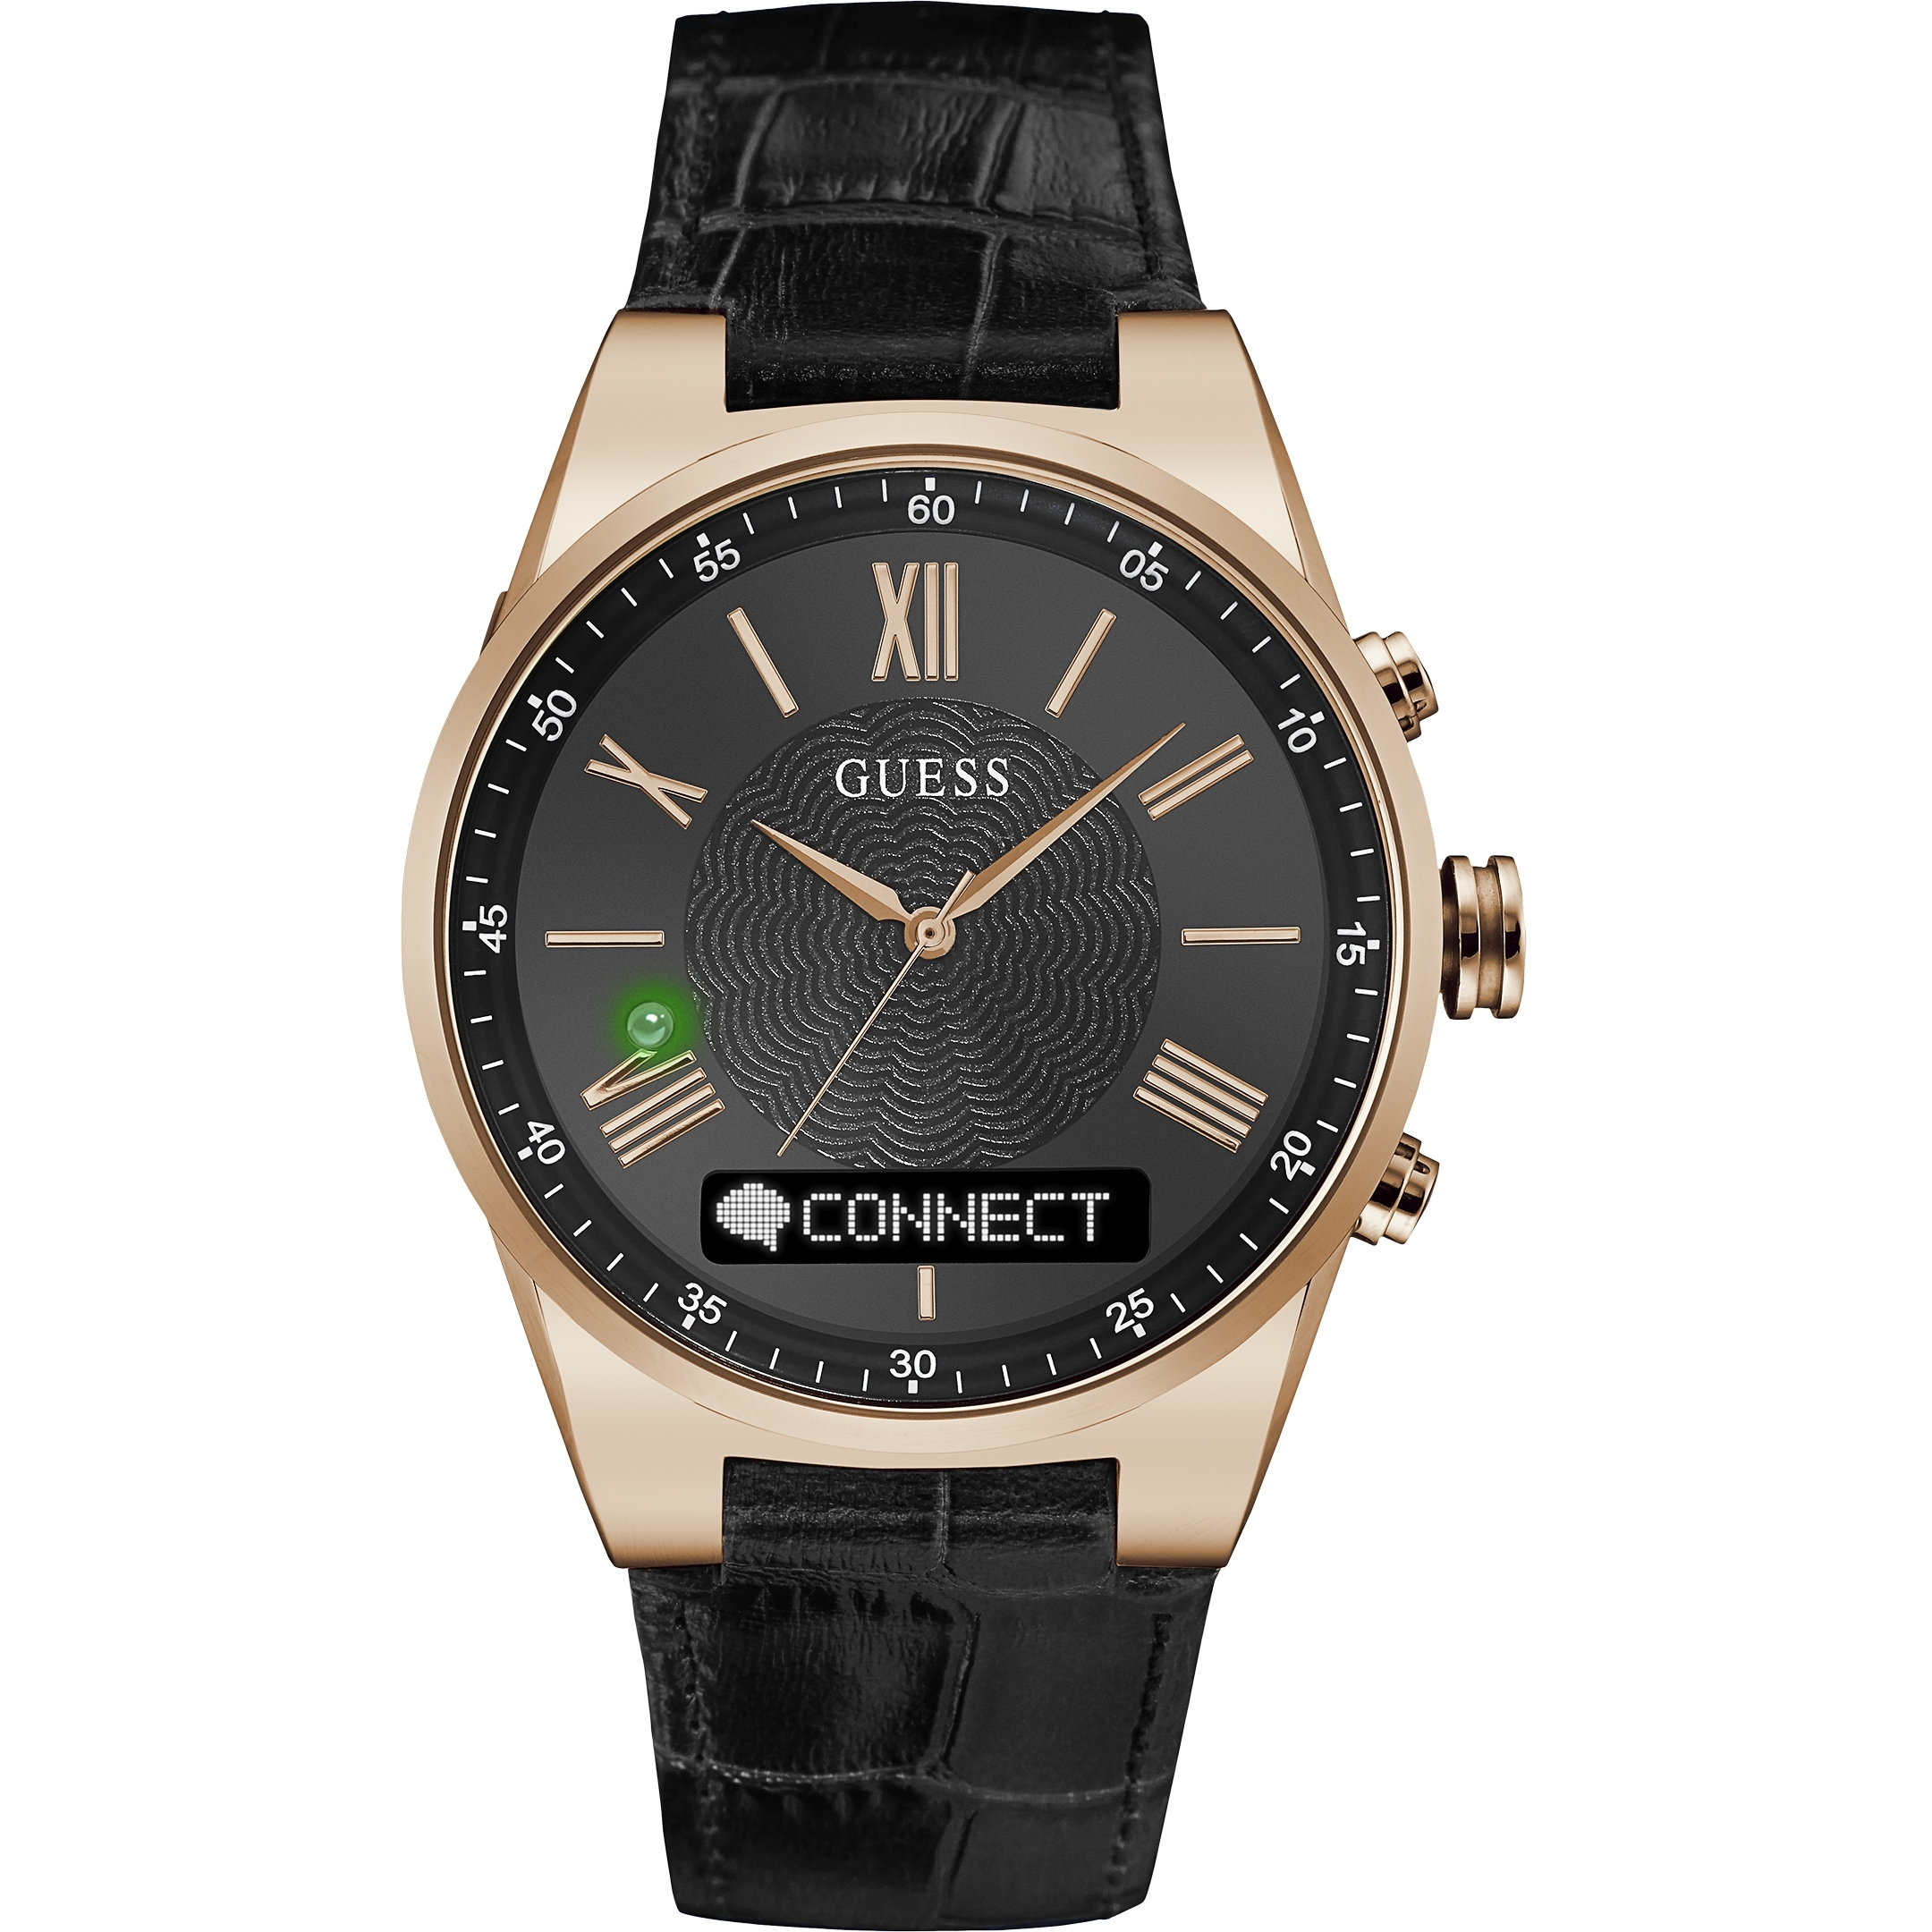 unisexe guess connect bluetooth hybride smartwatch montre c0002mb3. Black Bedroom Furniture Sets. Home Design Ideas